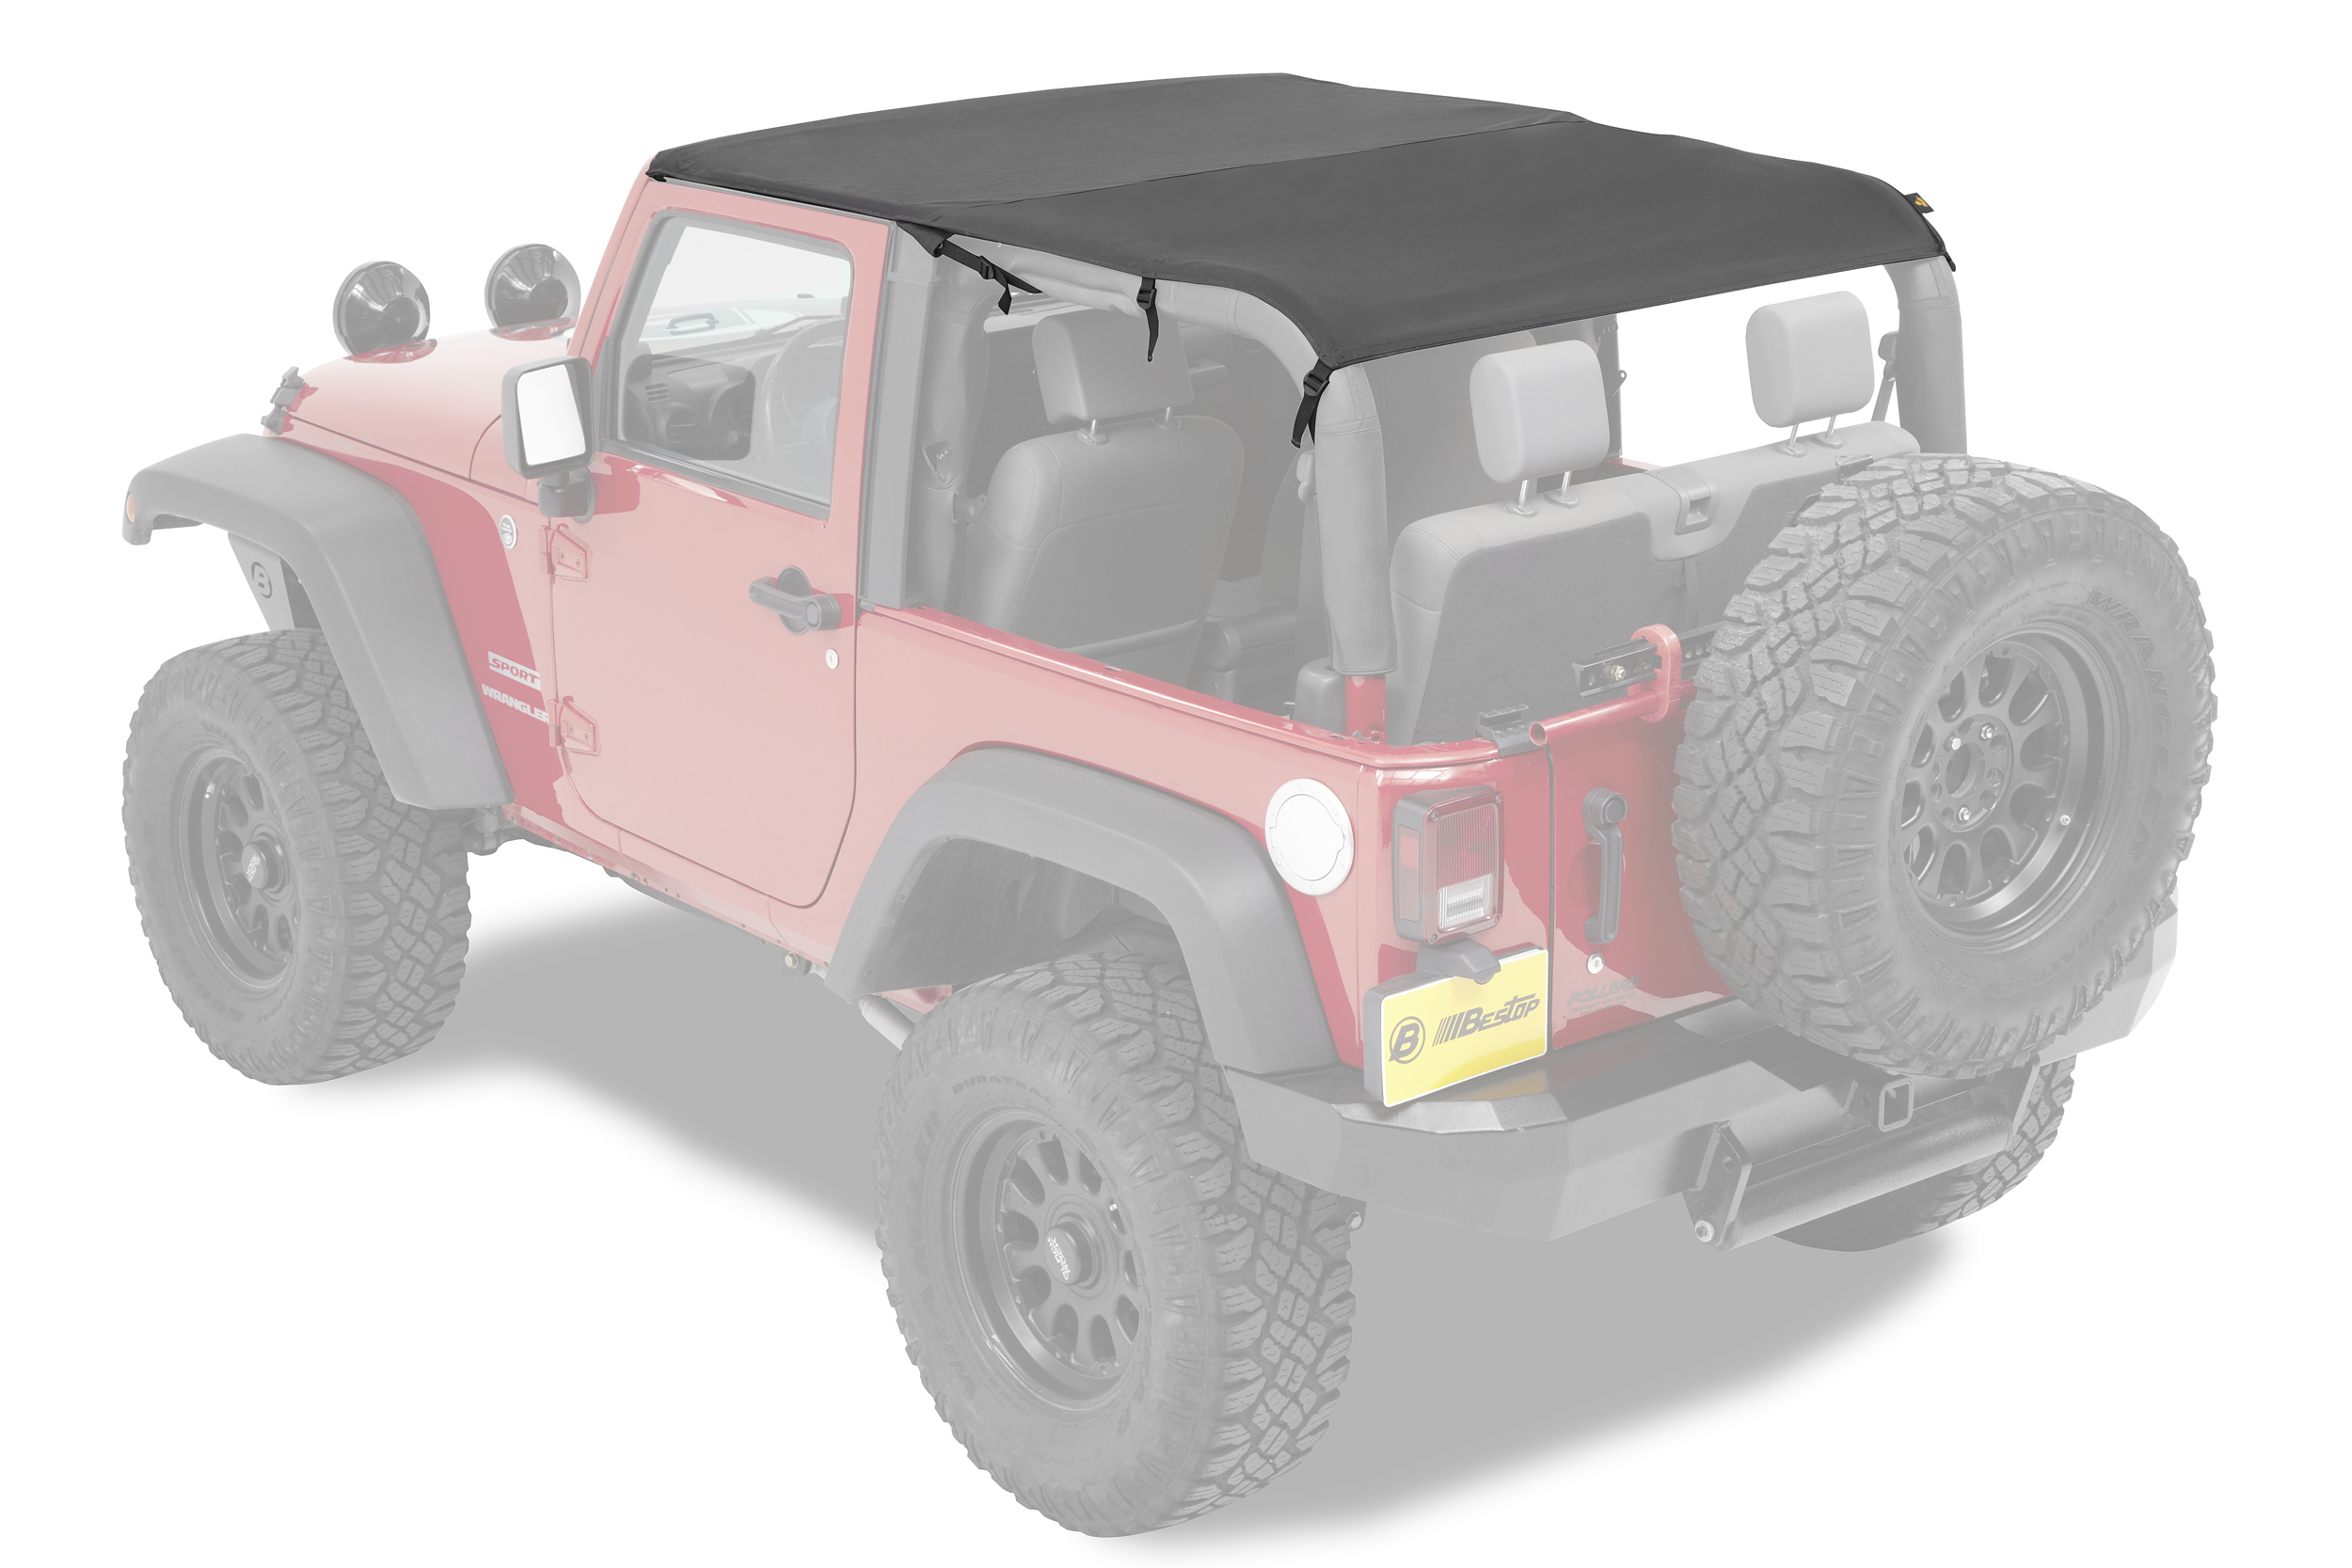 bestop 52593 cable style safari jeep bikini top wrangler jk. Cars Review. Best American Auto & Cars Review